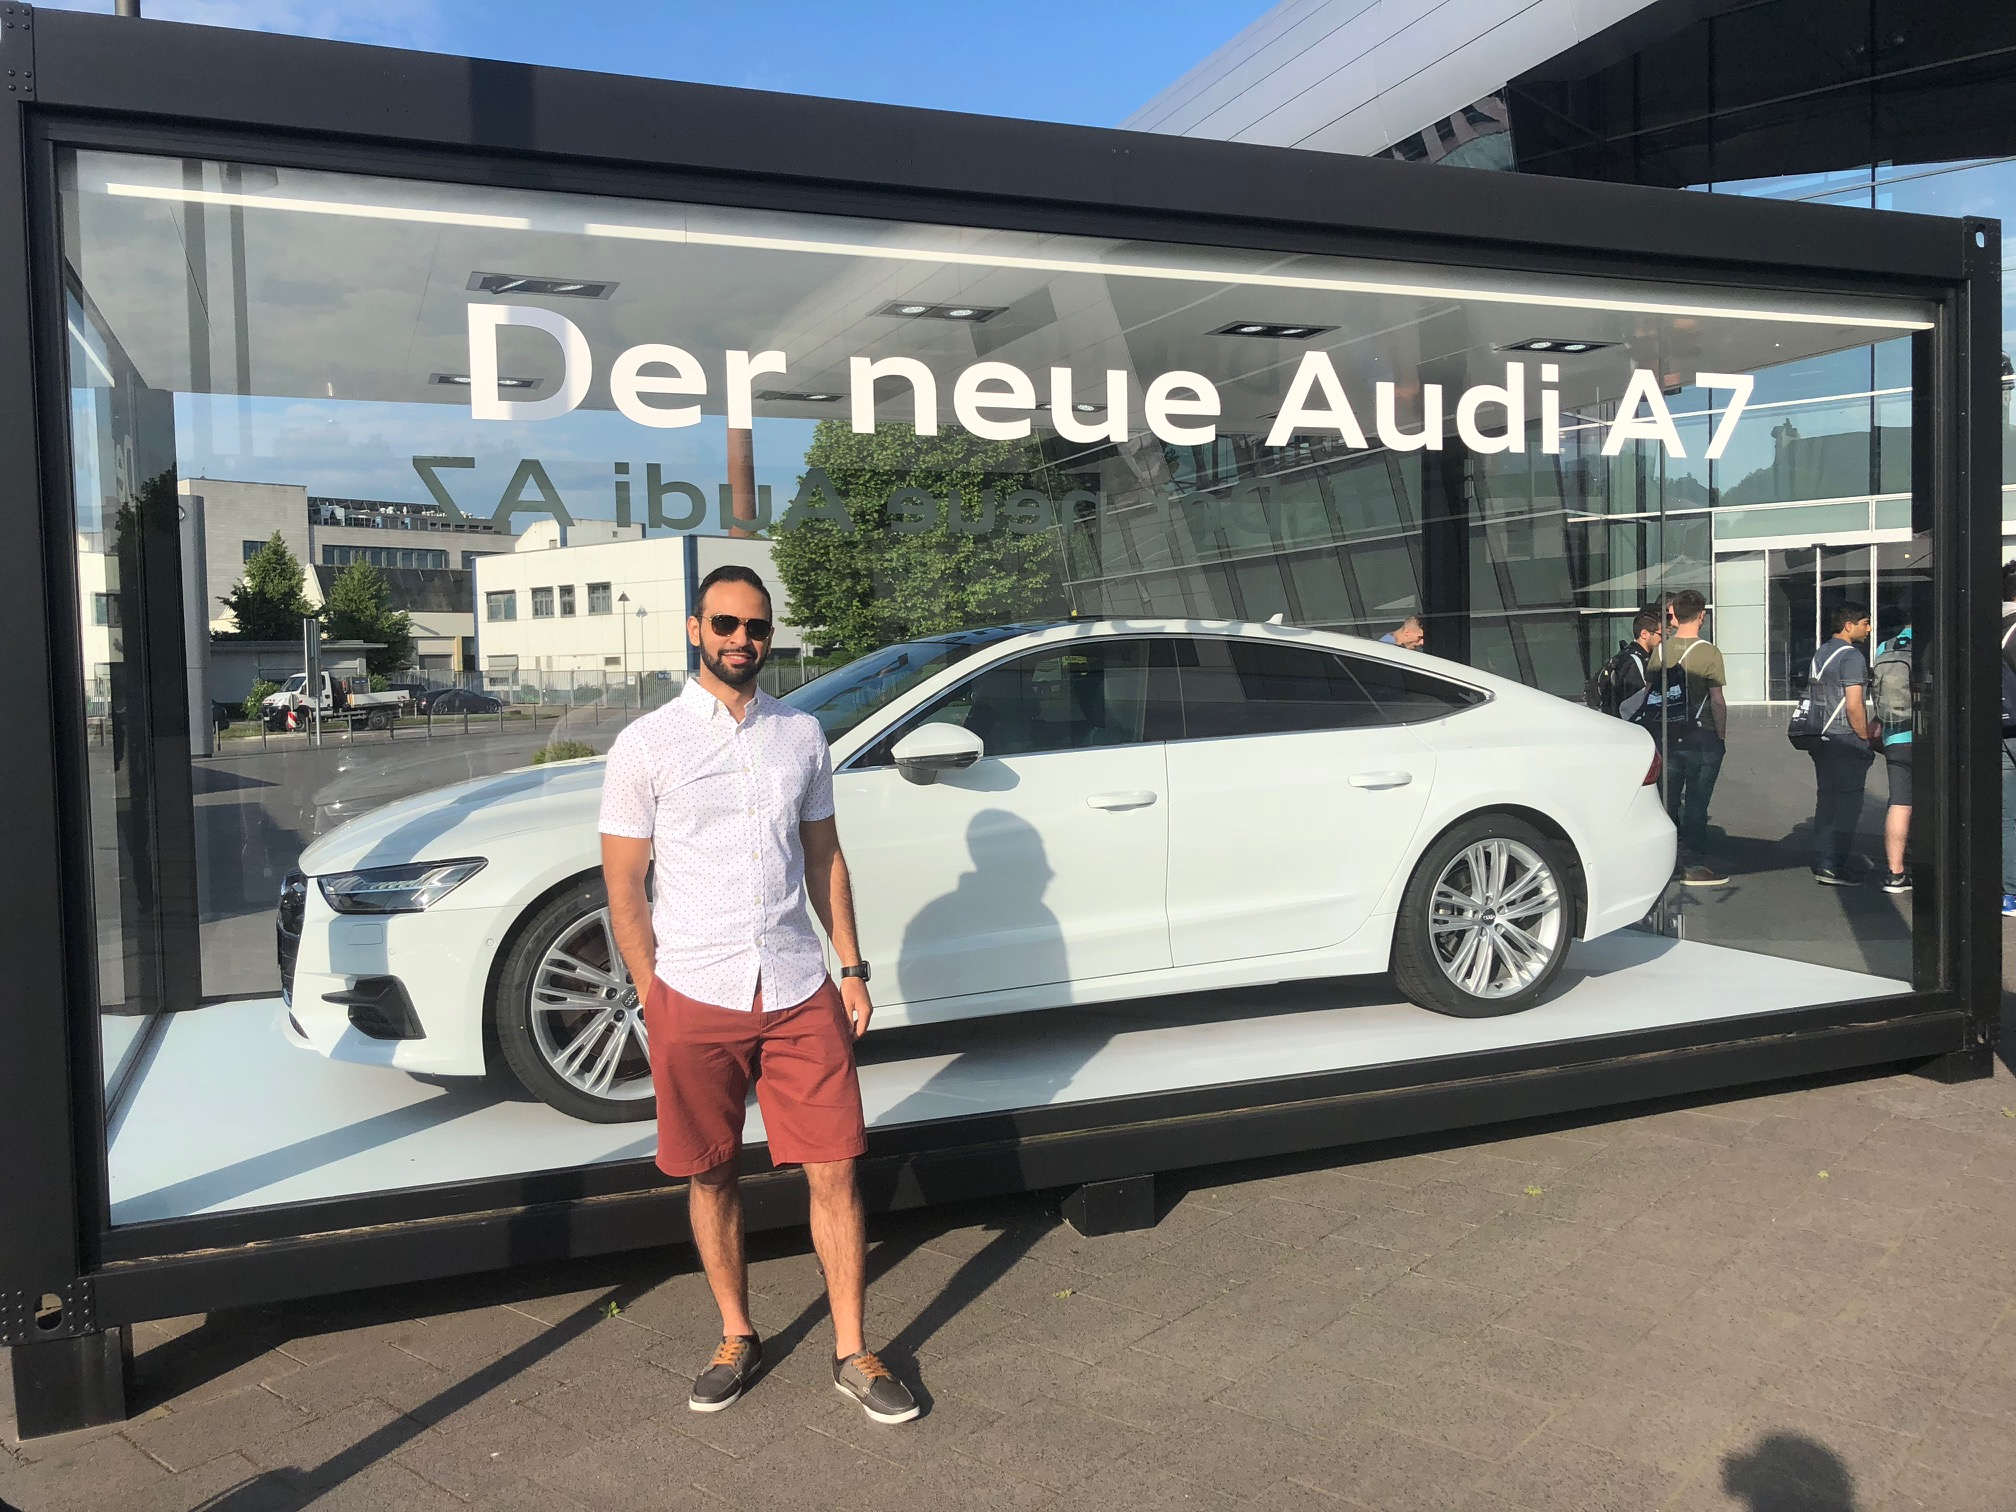 Follow this Summer 2018's Office of Study Abroad & International Experiences Global Correspondent, Nour Khreim, on his studies in Pforzheim, Germany! Nour is a UMass Lowell Mechanical Engineering major studying this summer on a UMass Lowell Exchange study abroad program, Engineers Made in Germany (EMIG).